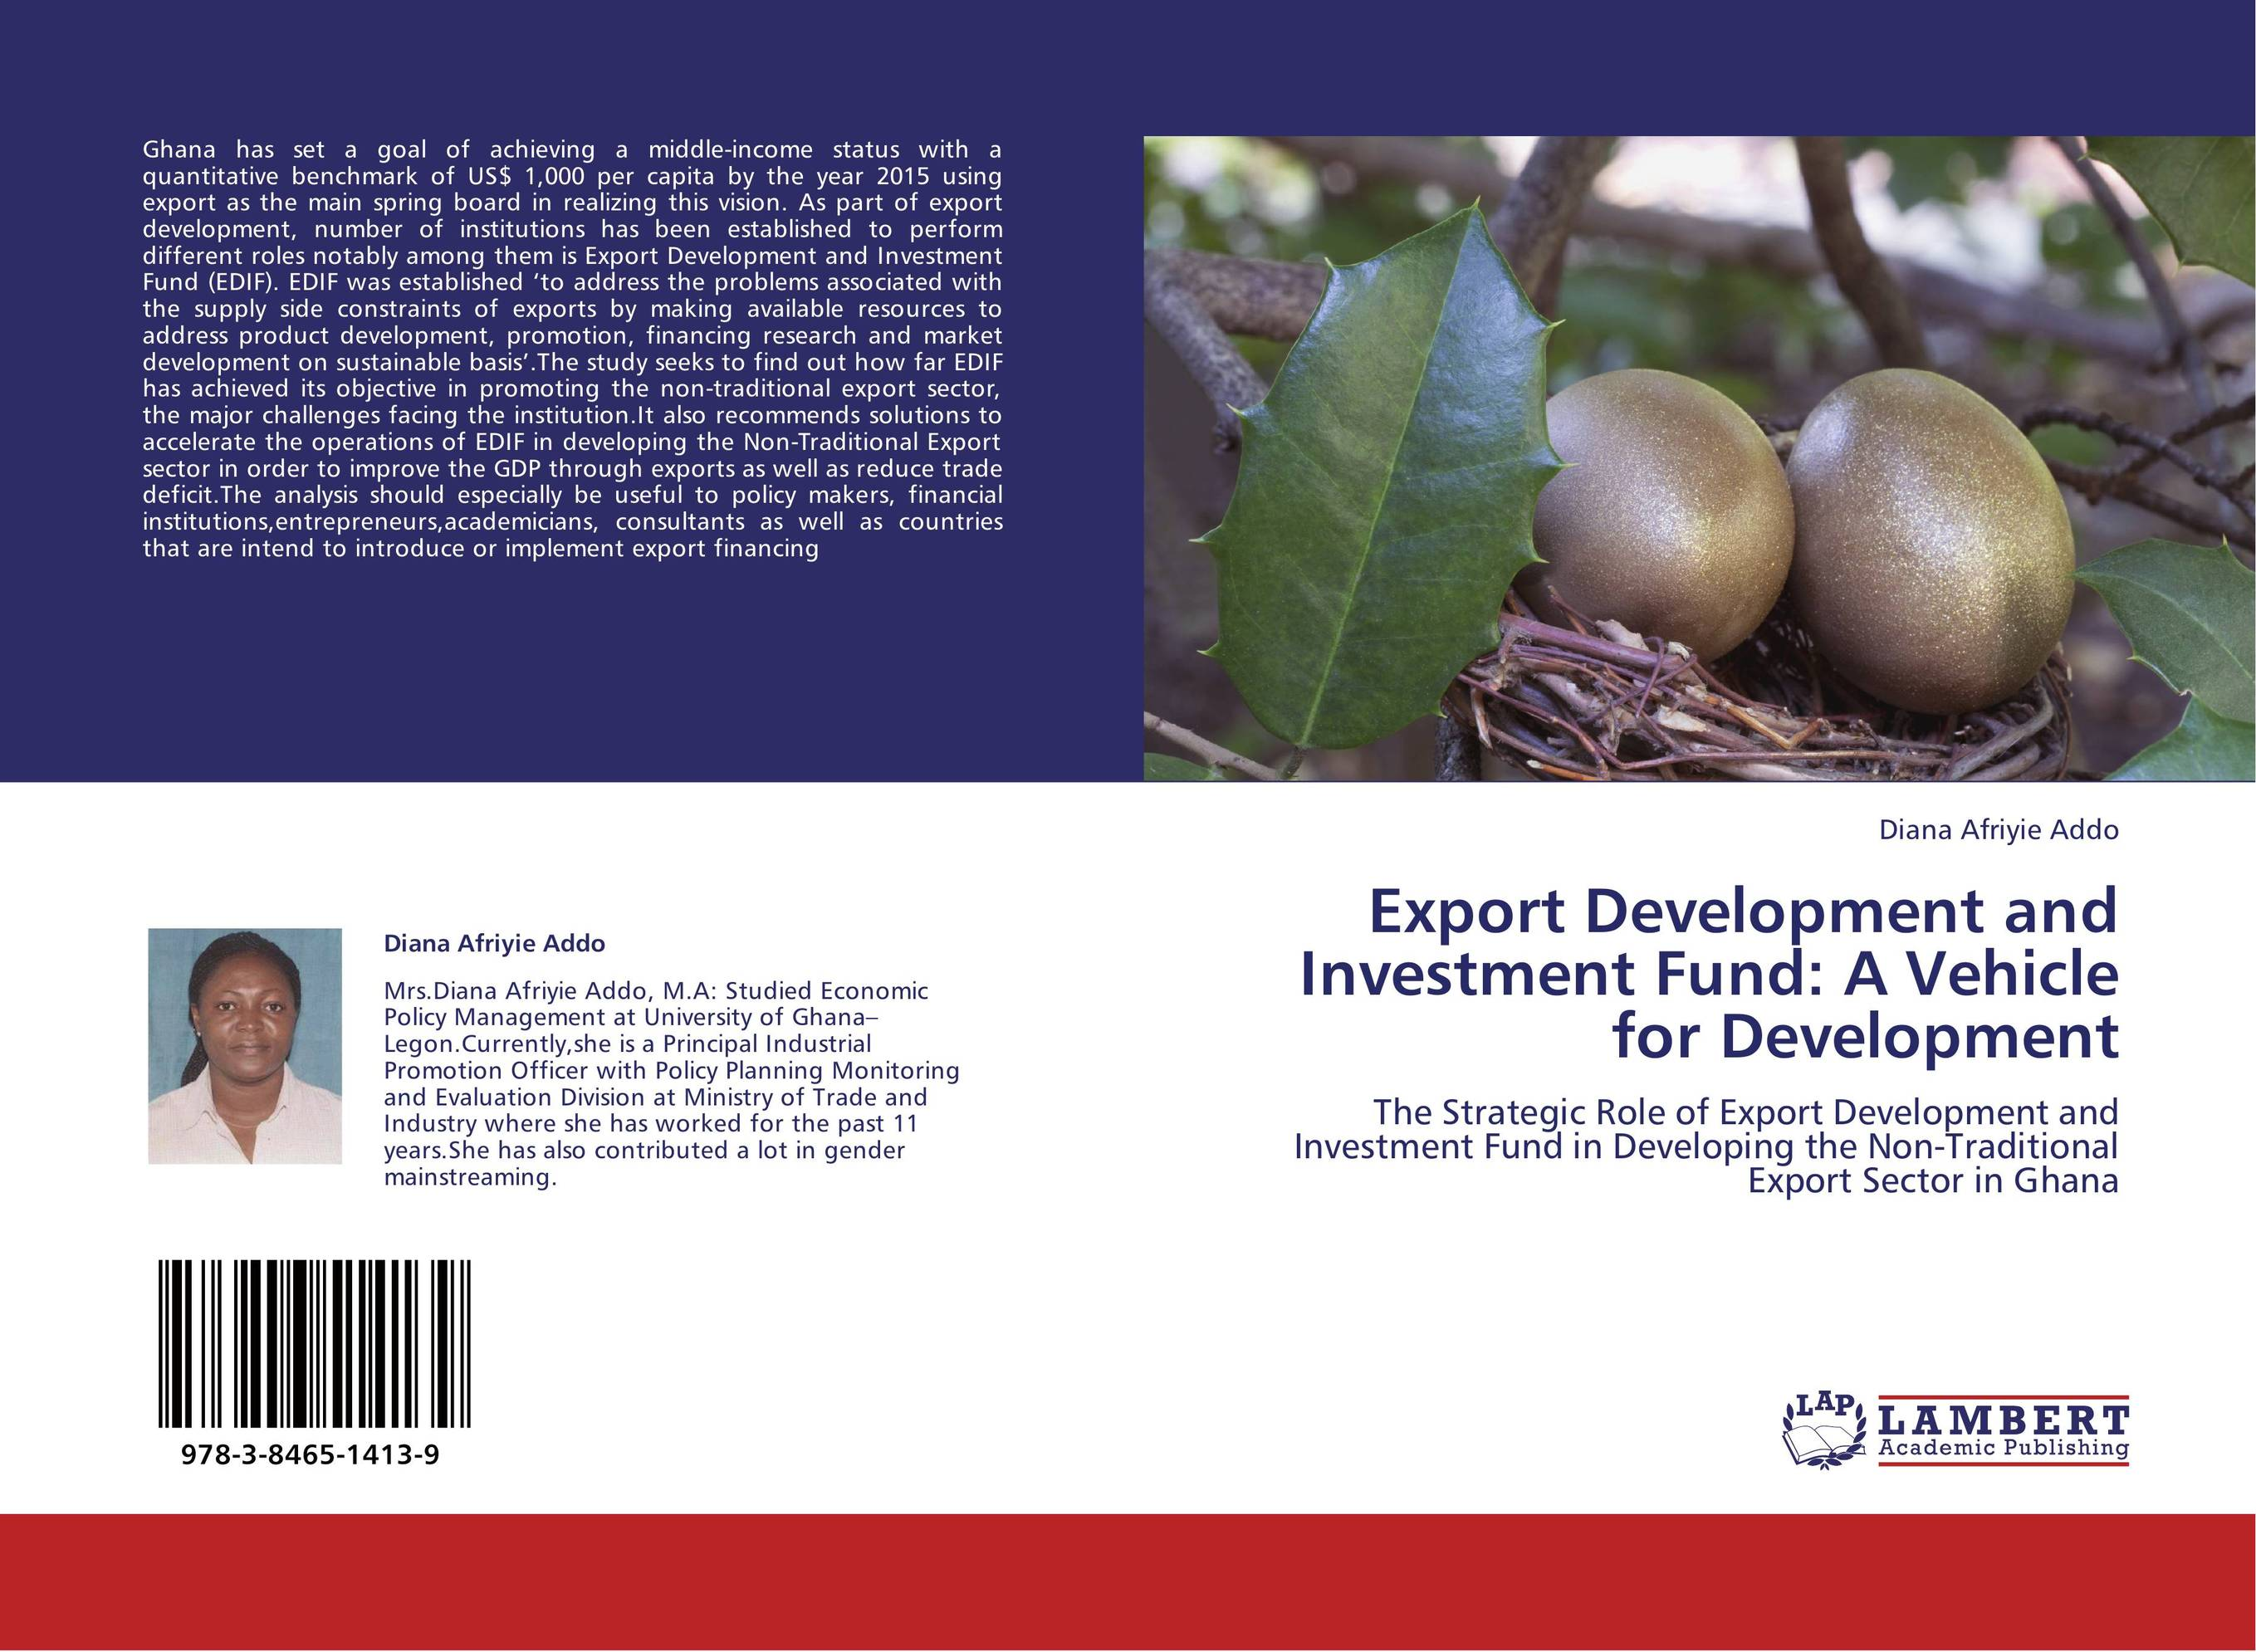 Export Development and Investment Fund: A Vehicle for Development presidential nominee will address a gathering